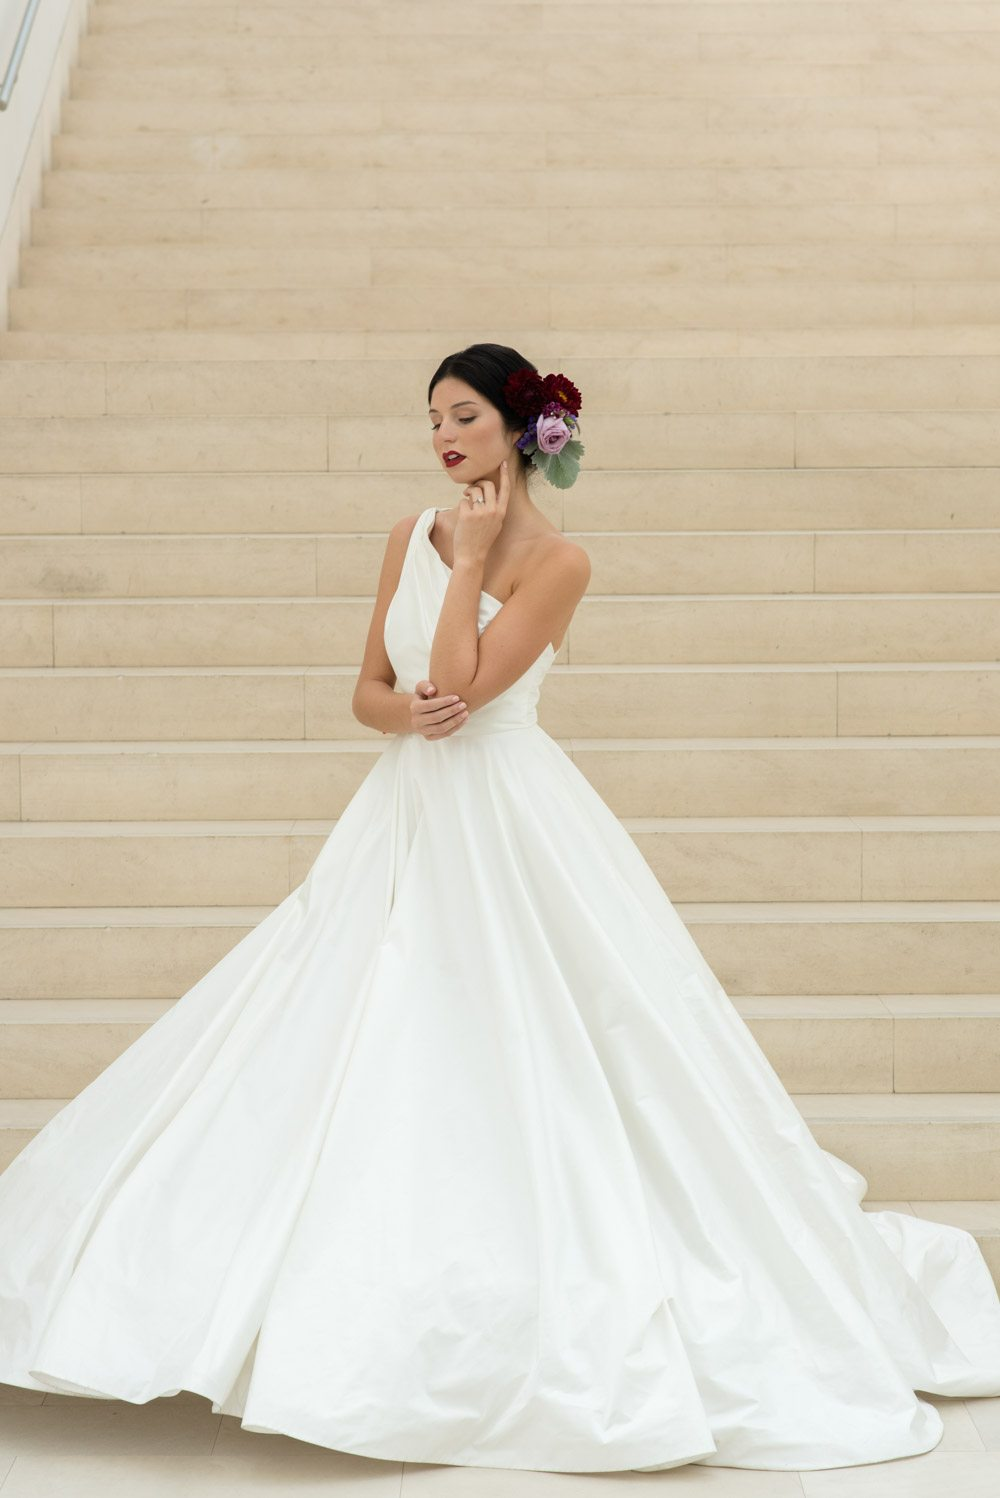 Modern Art Gallery Wedding Ideas at Jepson Center for the Arts in ...